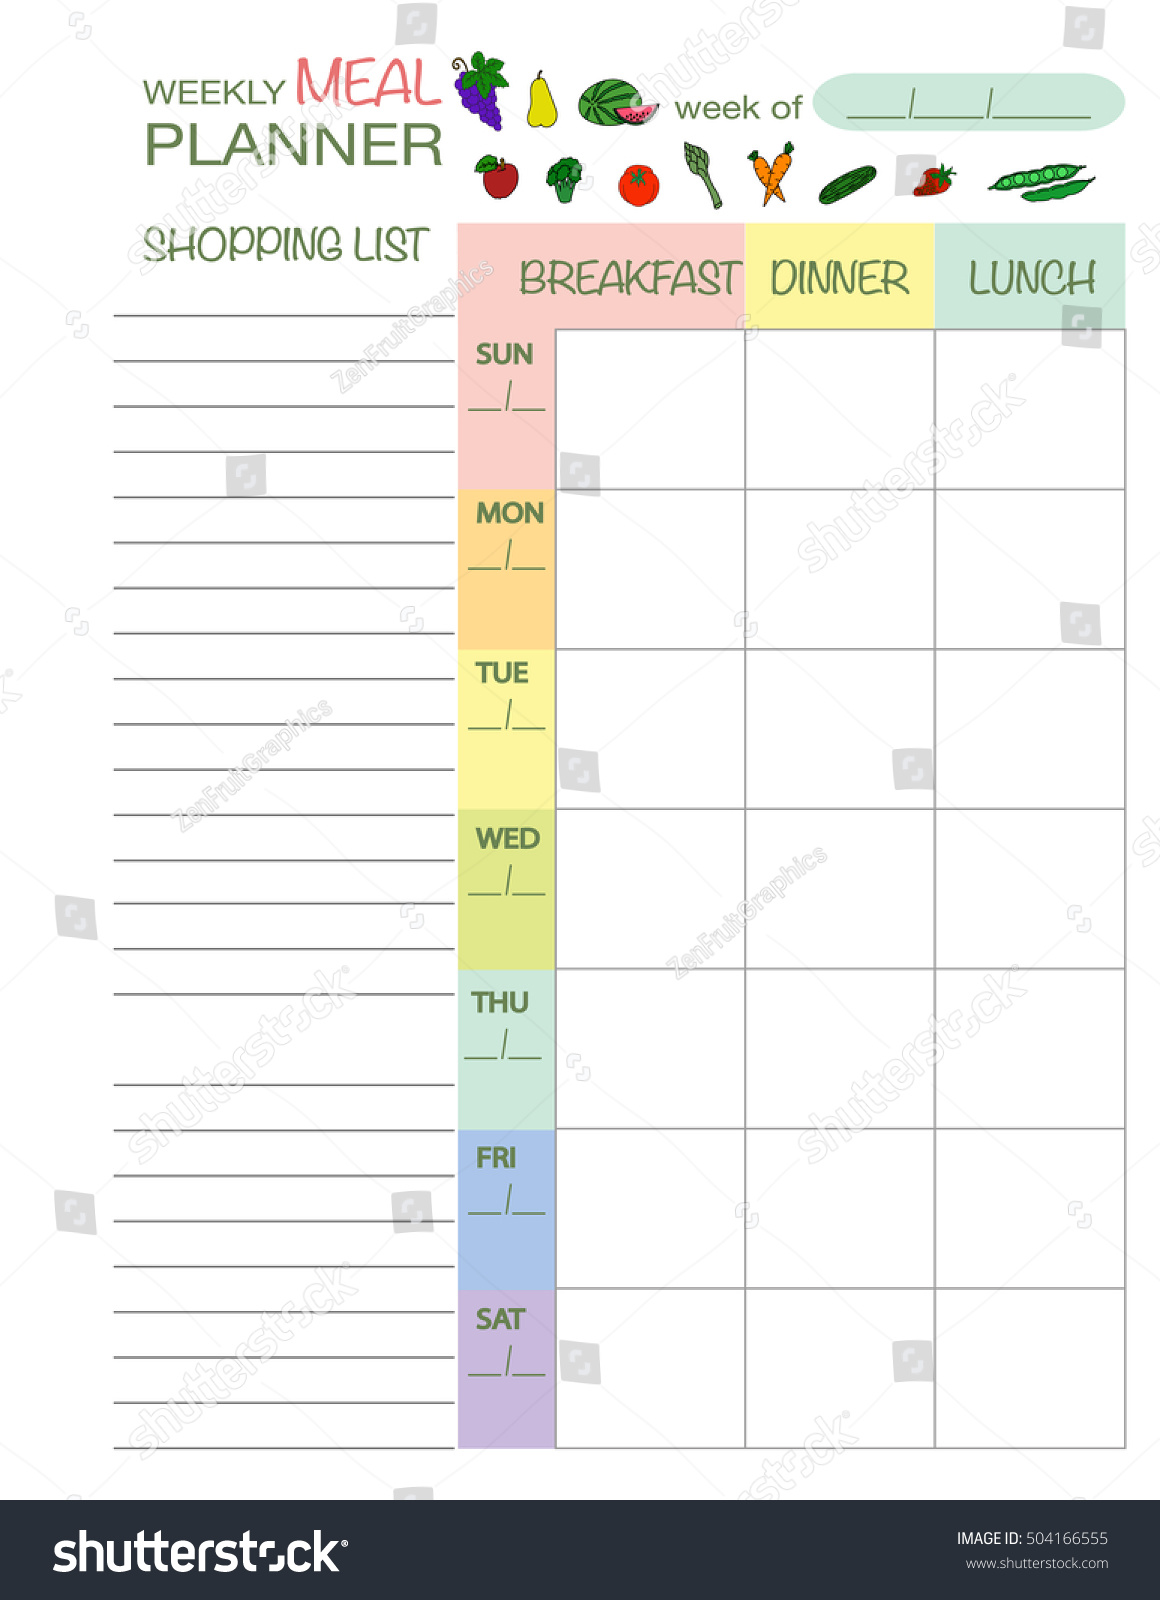 Weekly Menu Planner Template Meal Schedule Stock Vector 504166555 ...